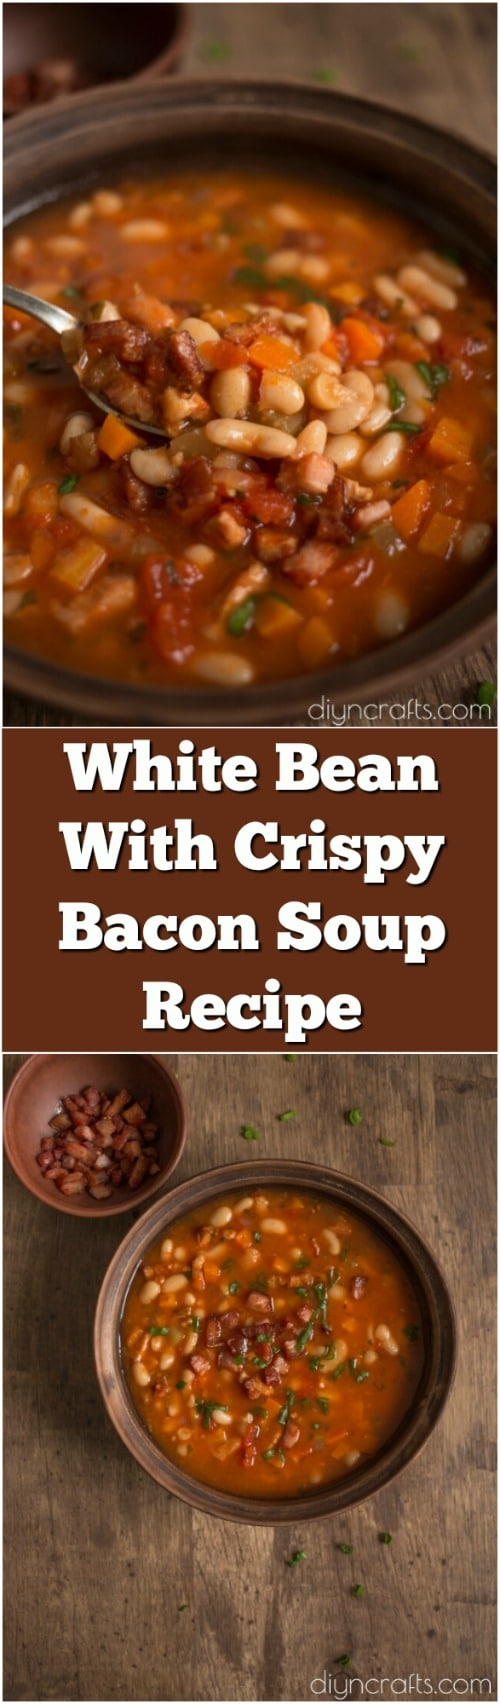 White Bean With Crispy Bacon Soup - The Yummiest Soup For The Winter Blues